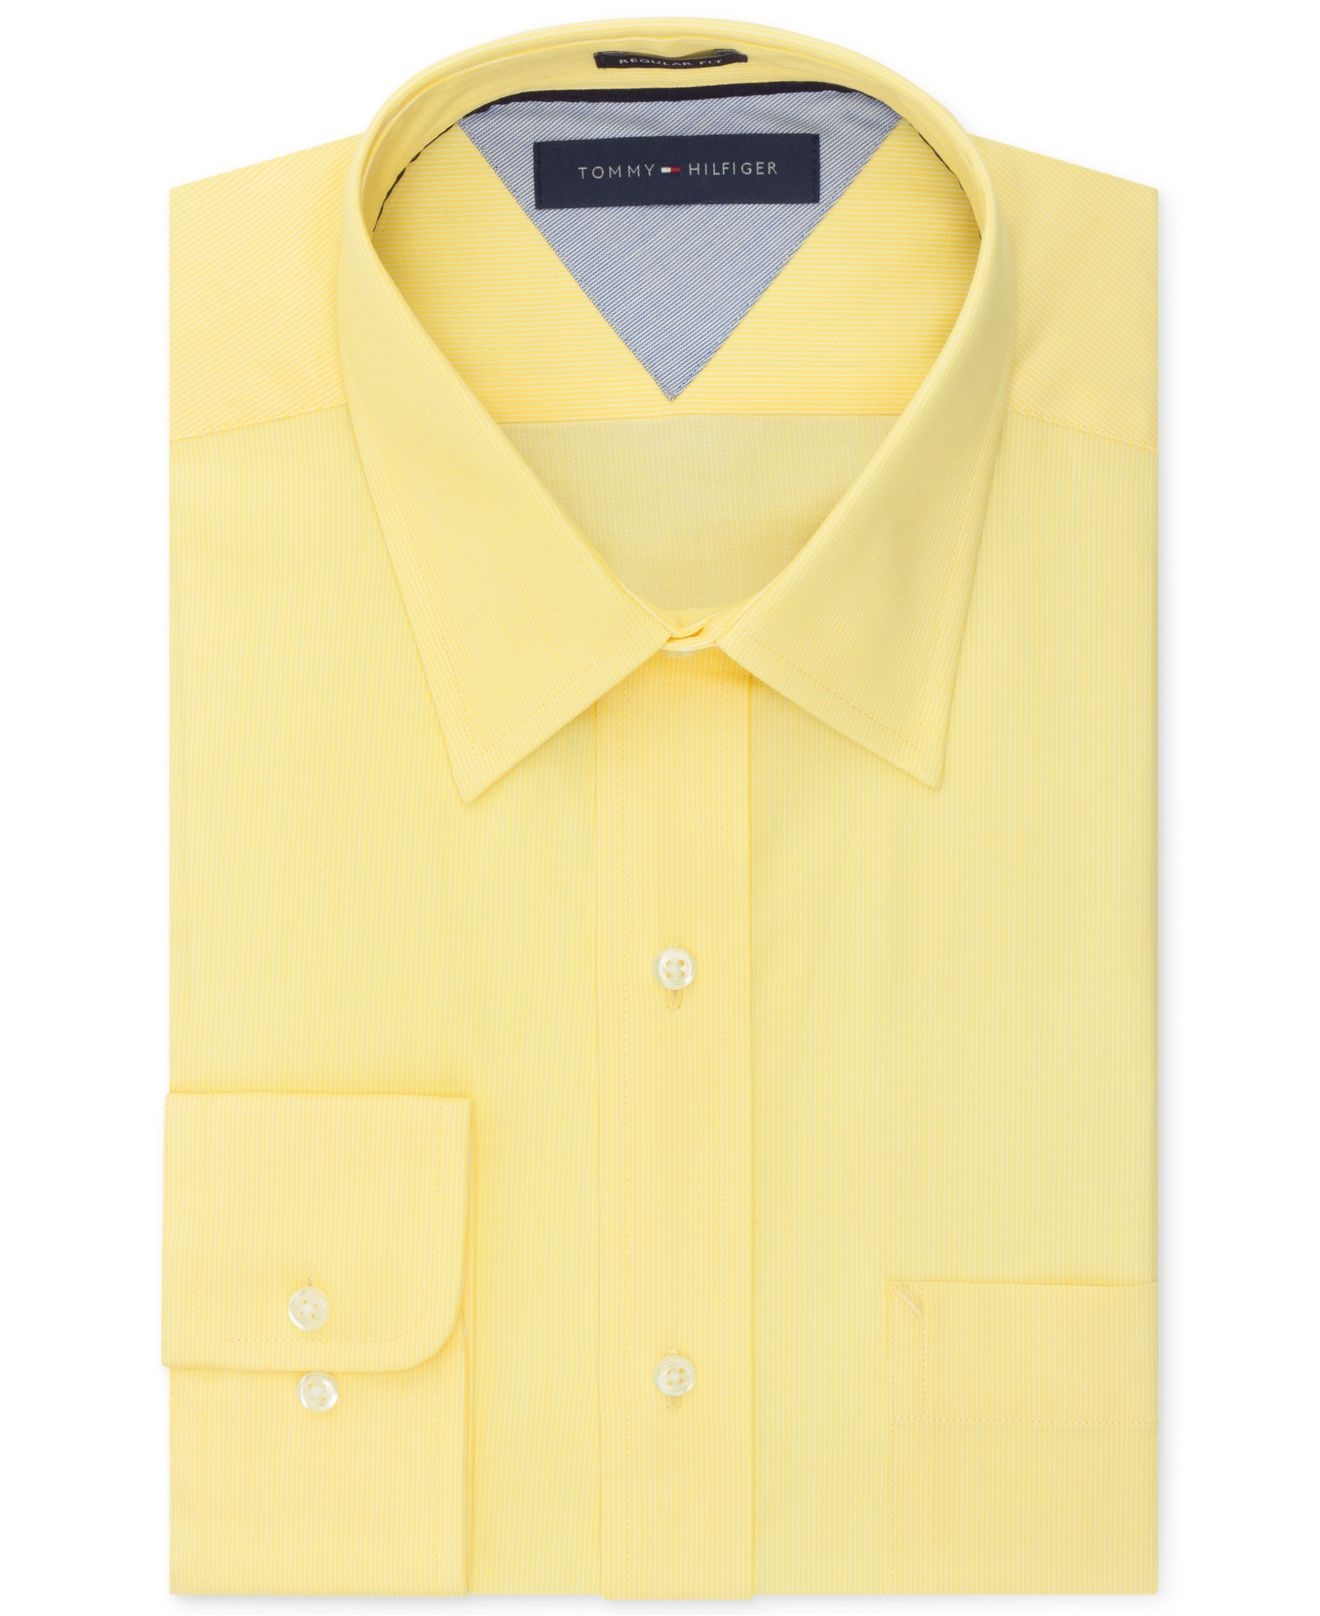 Lyst Tommy Hilfiger Easy Care Sunlight Yellow Solid Dress Shirt In